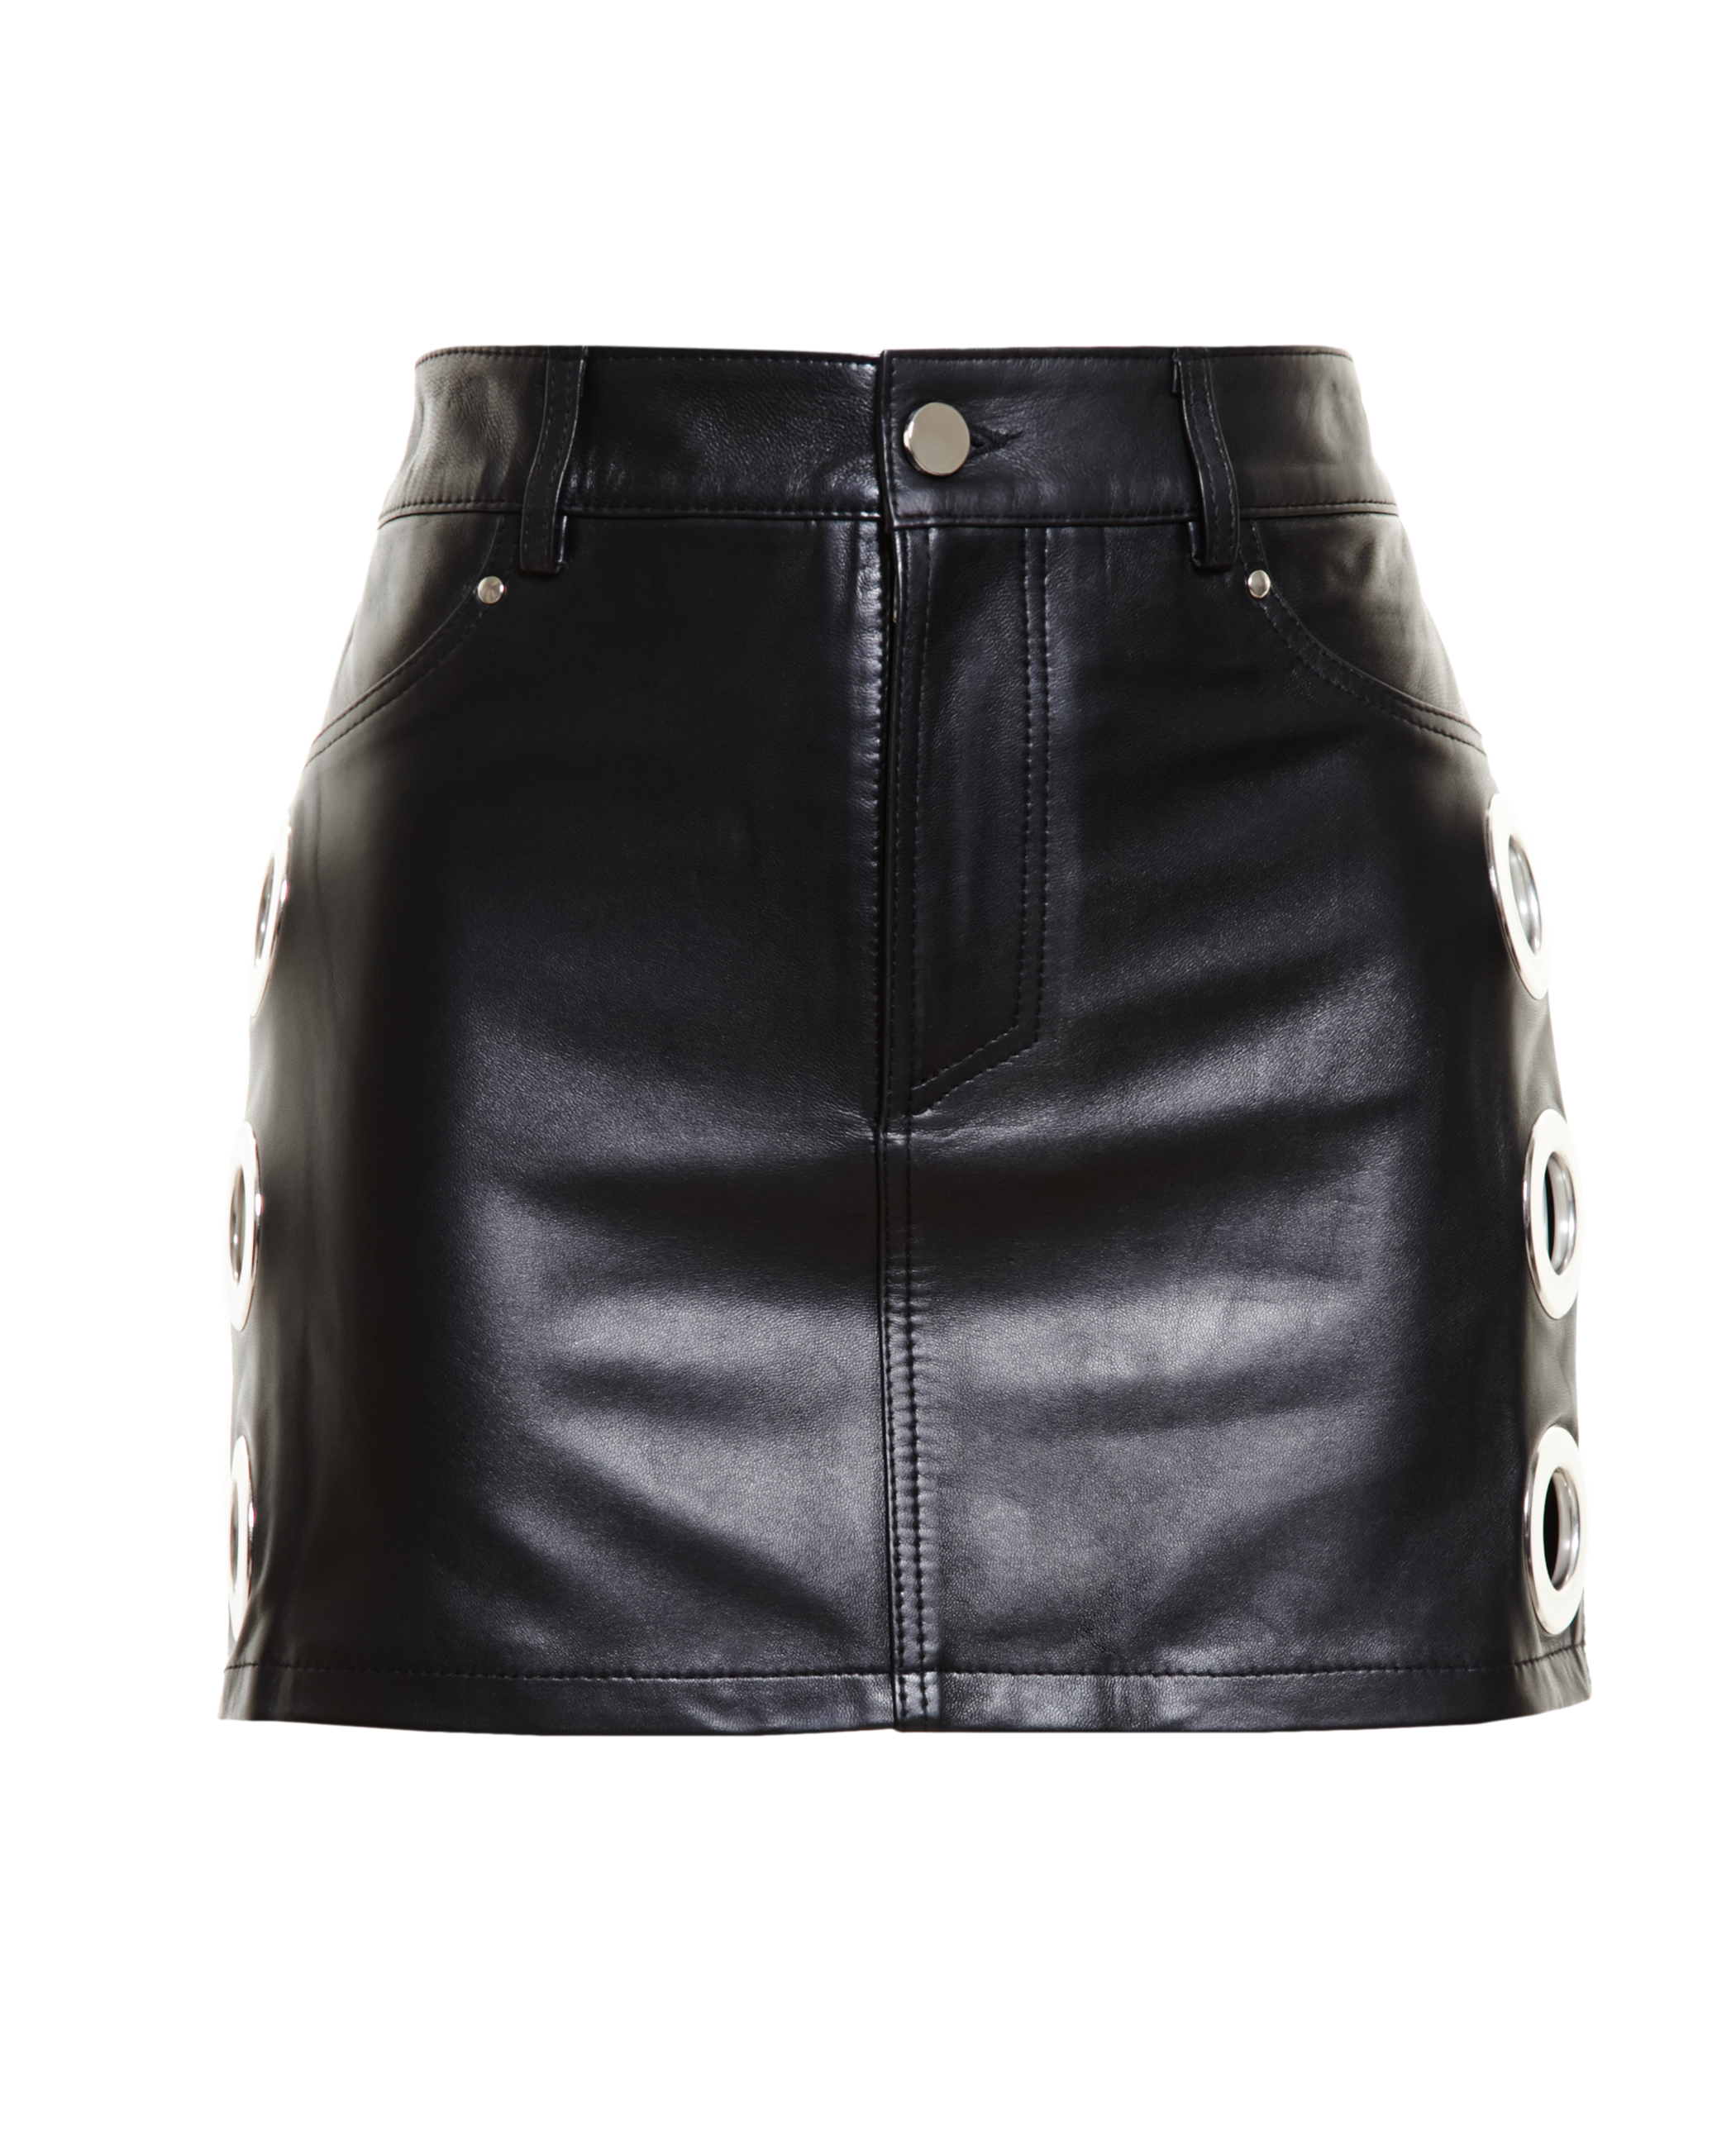 76e5f75dc8 Gallery. Previously sold at: Browns · Women's Leather Skirts Women's Black  ...